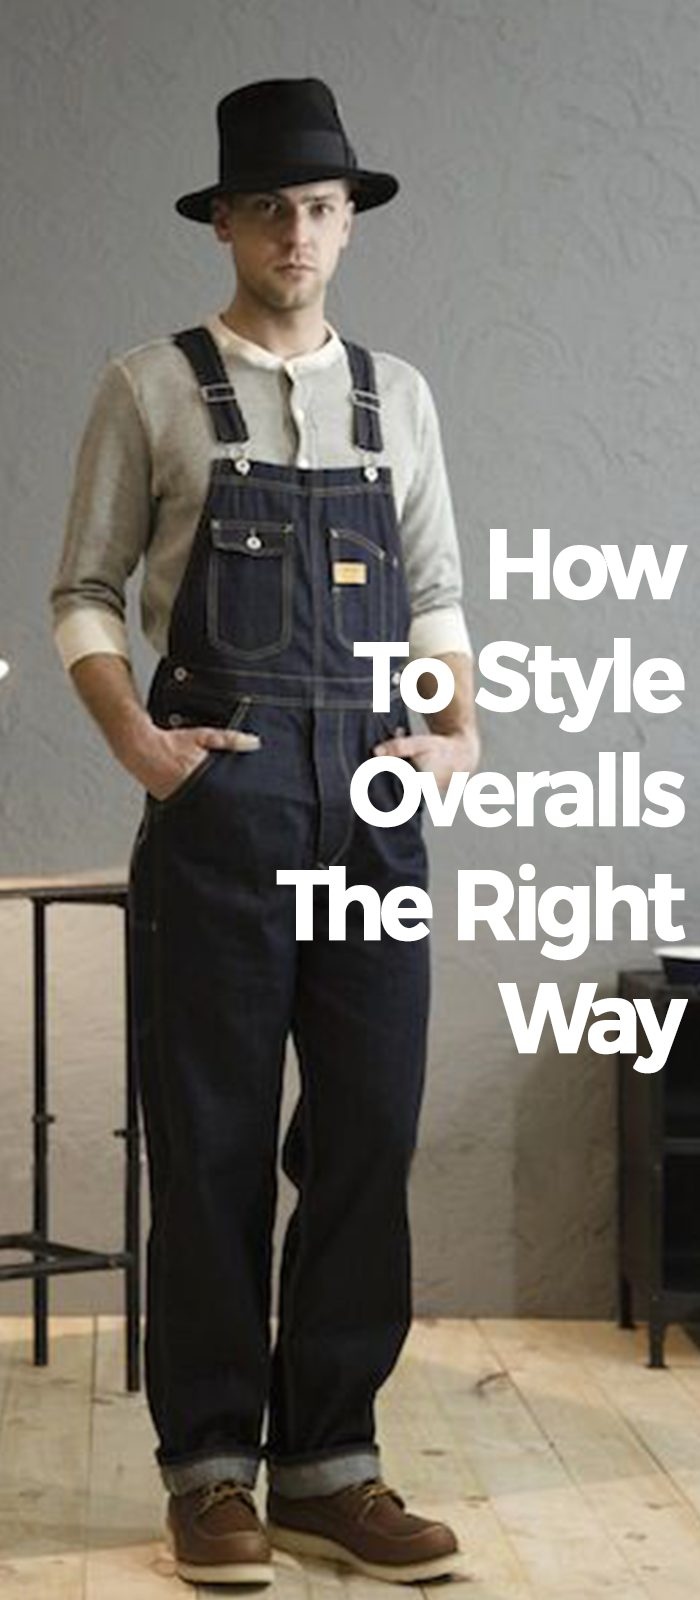 How To Style Overalls The Right Way